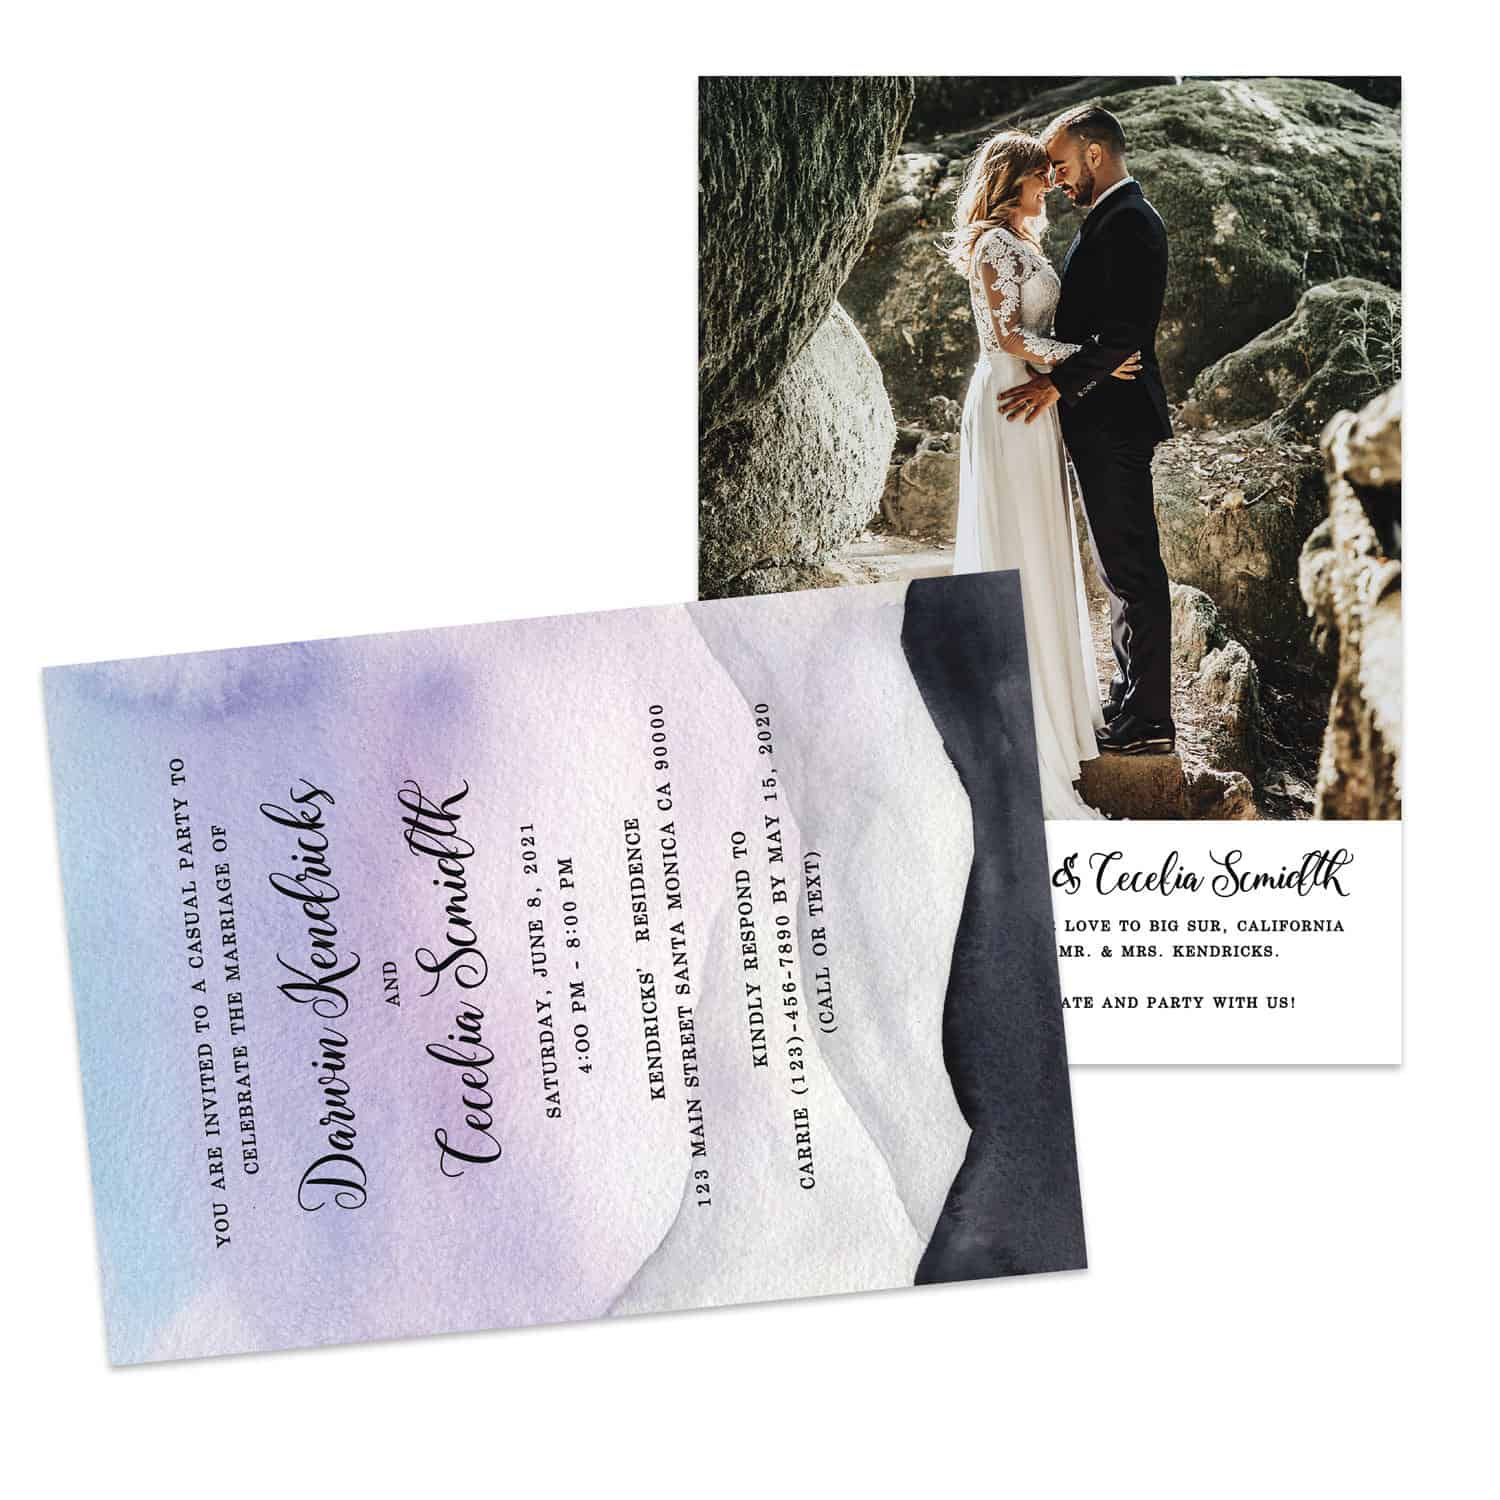 Boho Wedding Elopement Announcement And Party Reception Invitation Cards Elopement431